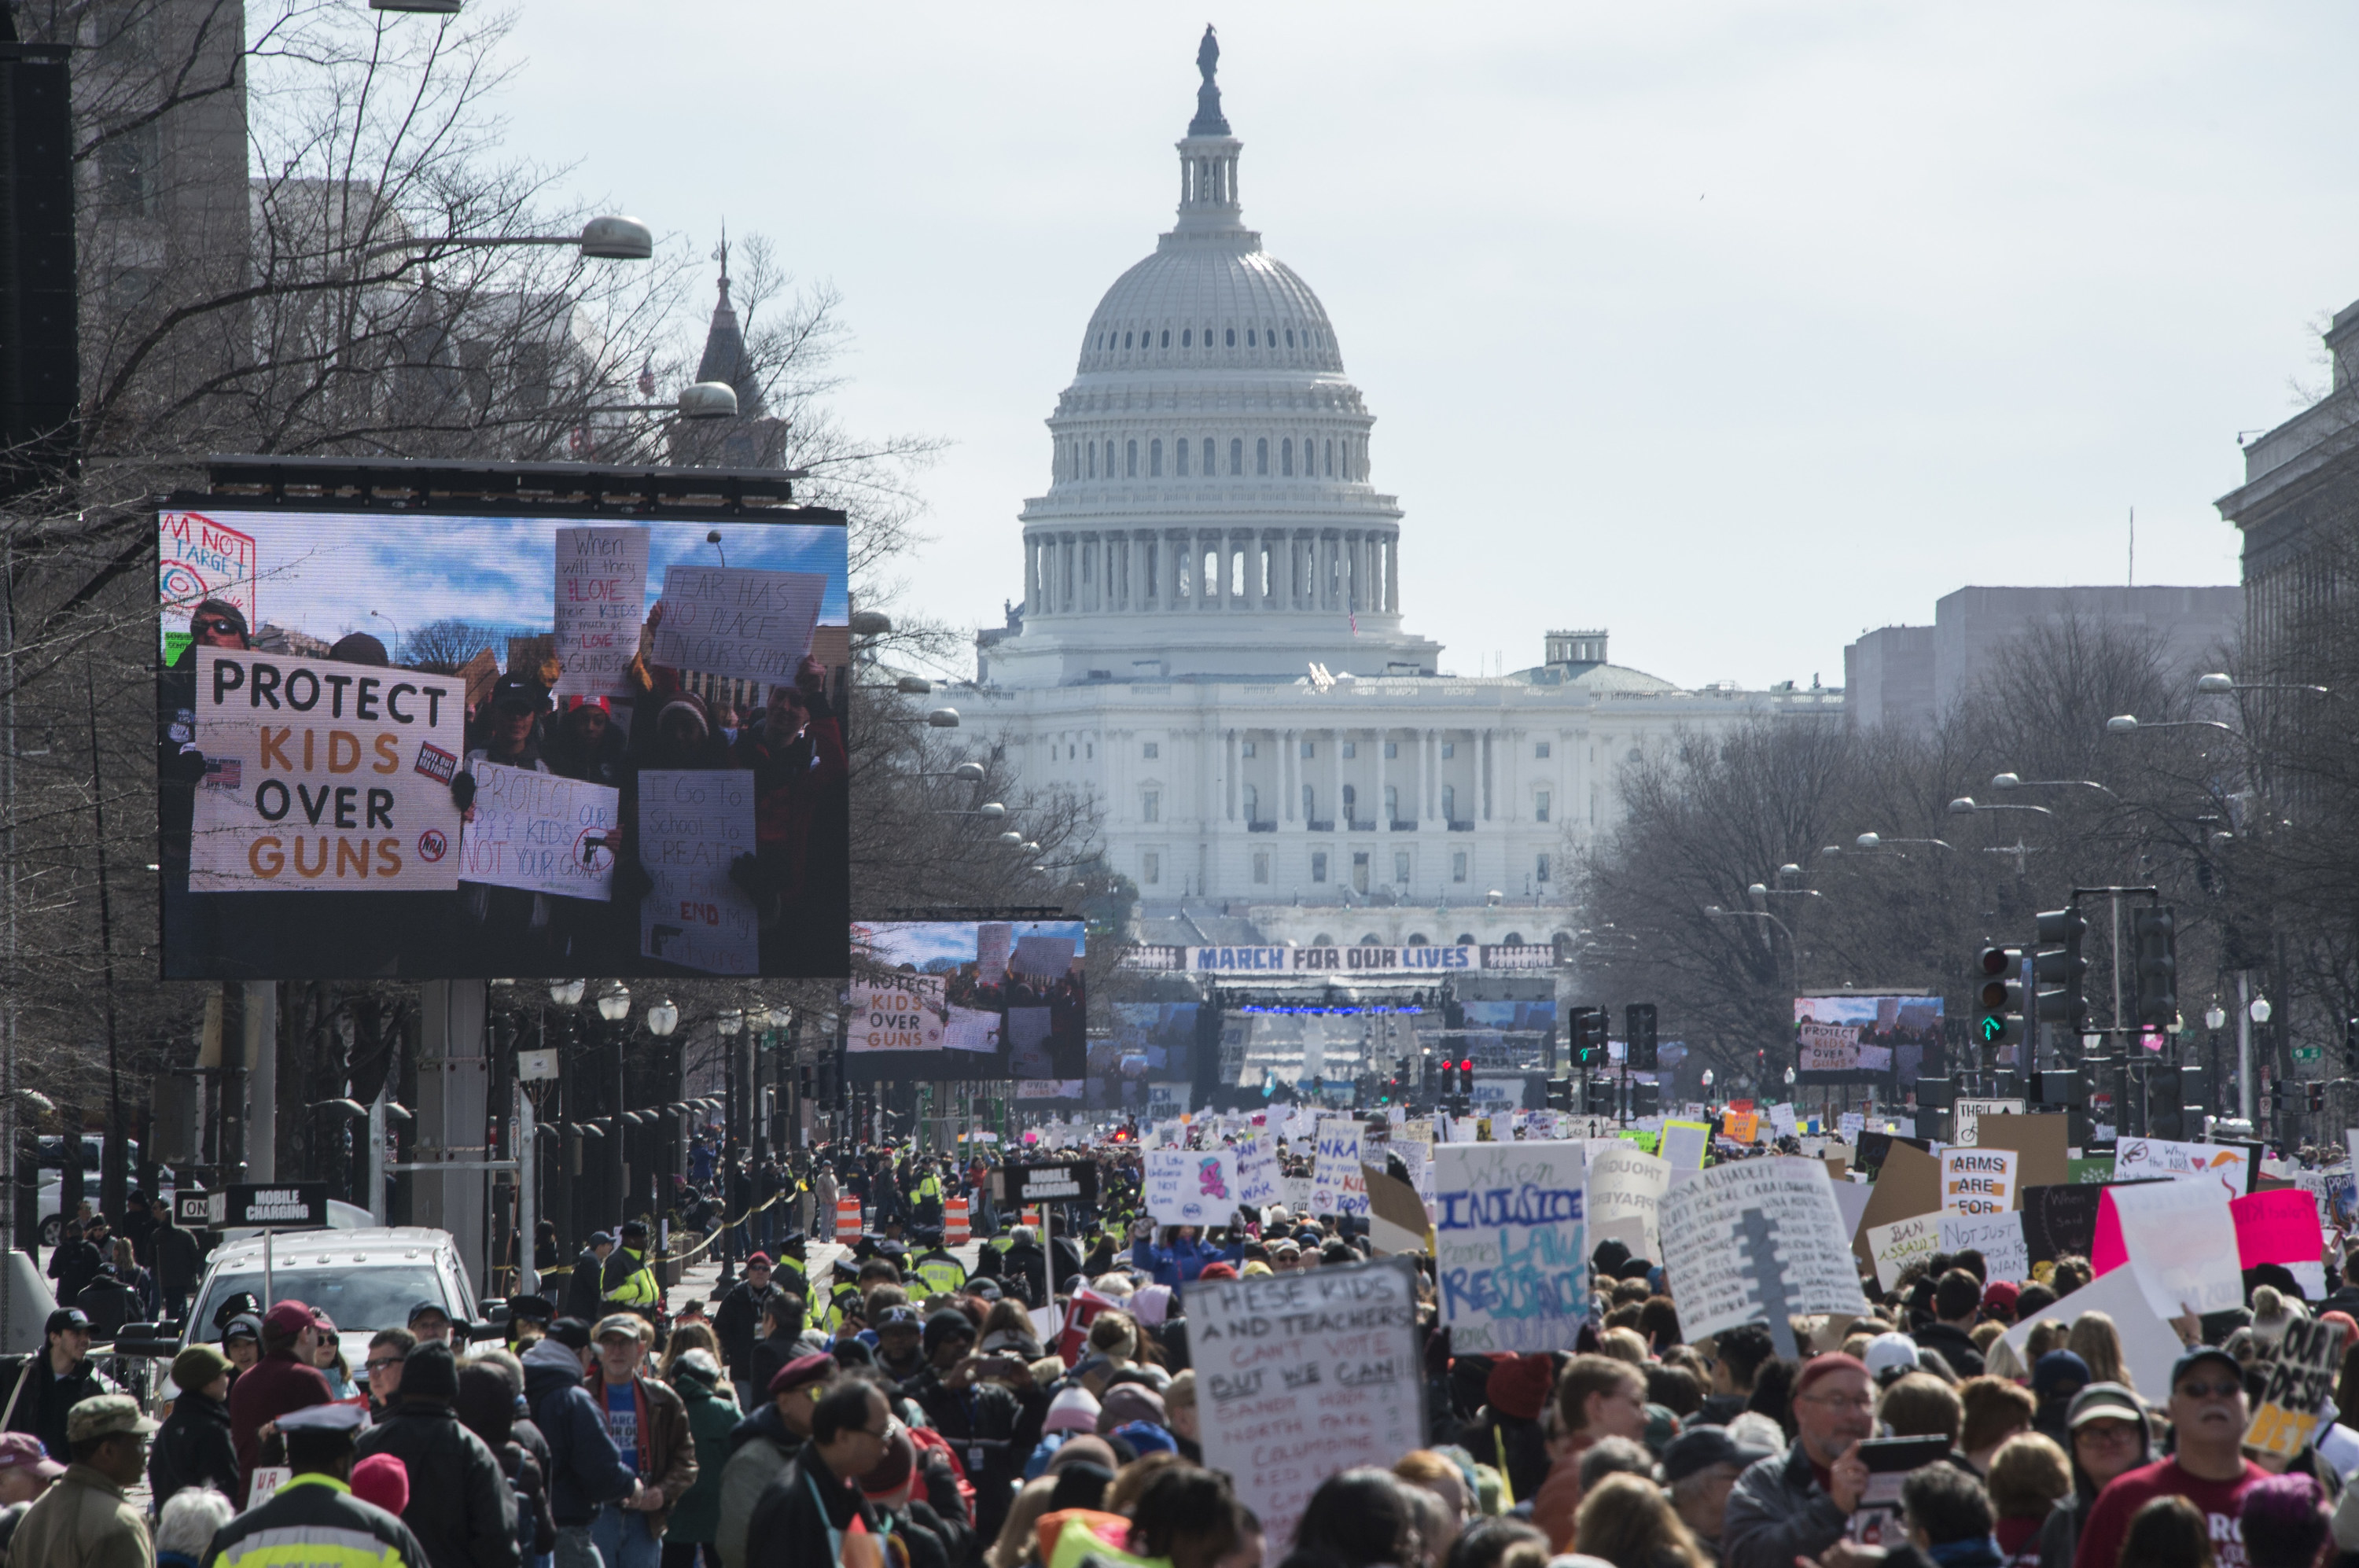 Protestors fill the street in front of the Capitol